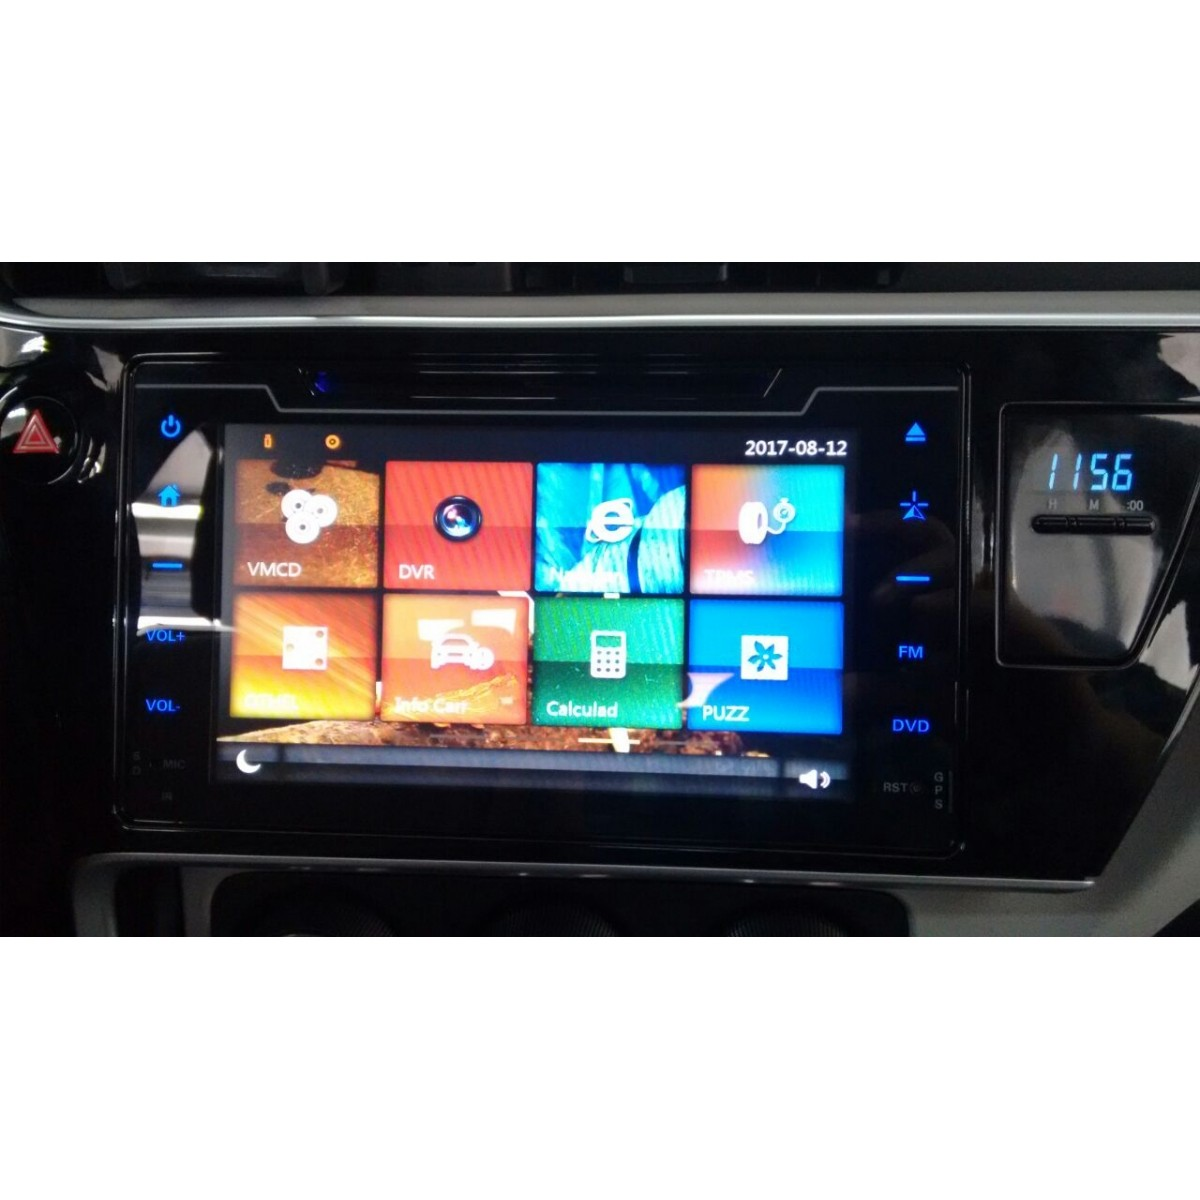 "Central Multimidia Toyota Corolla 2017 / 2018 GLI  - TELA 10""  Camera de ré Espelhamento DVD GPS Mapa Bluetooth MP3 USB Ipod SD Card Câmera Ré Grátis -  HETZER"